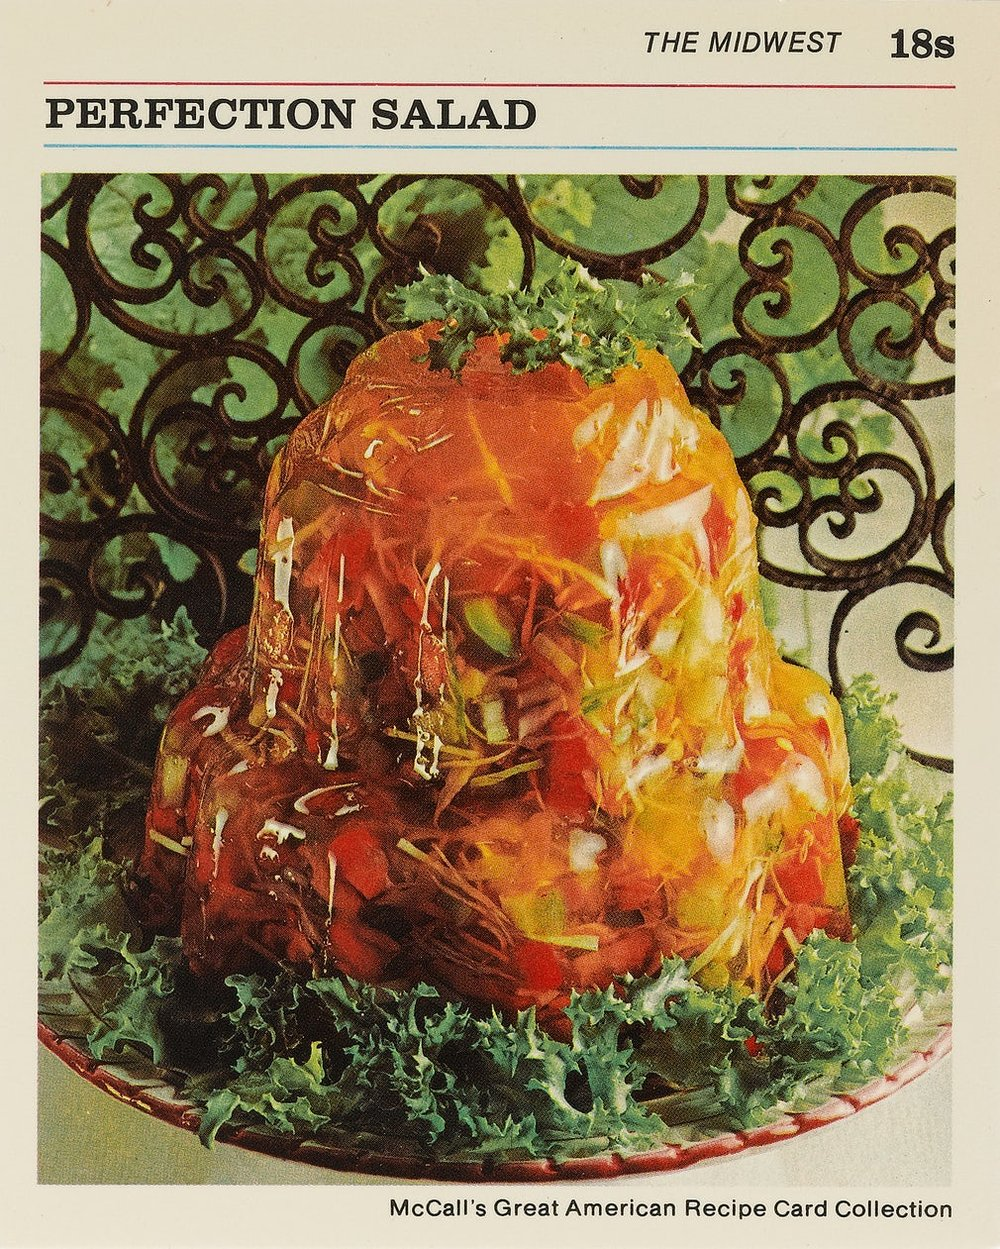 Gelatine moulding seemed very on-trend -  McCall's Great American Recipe Cards